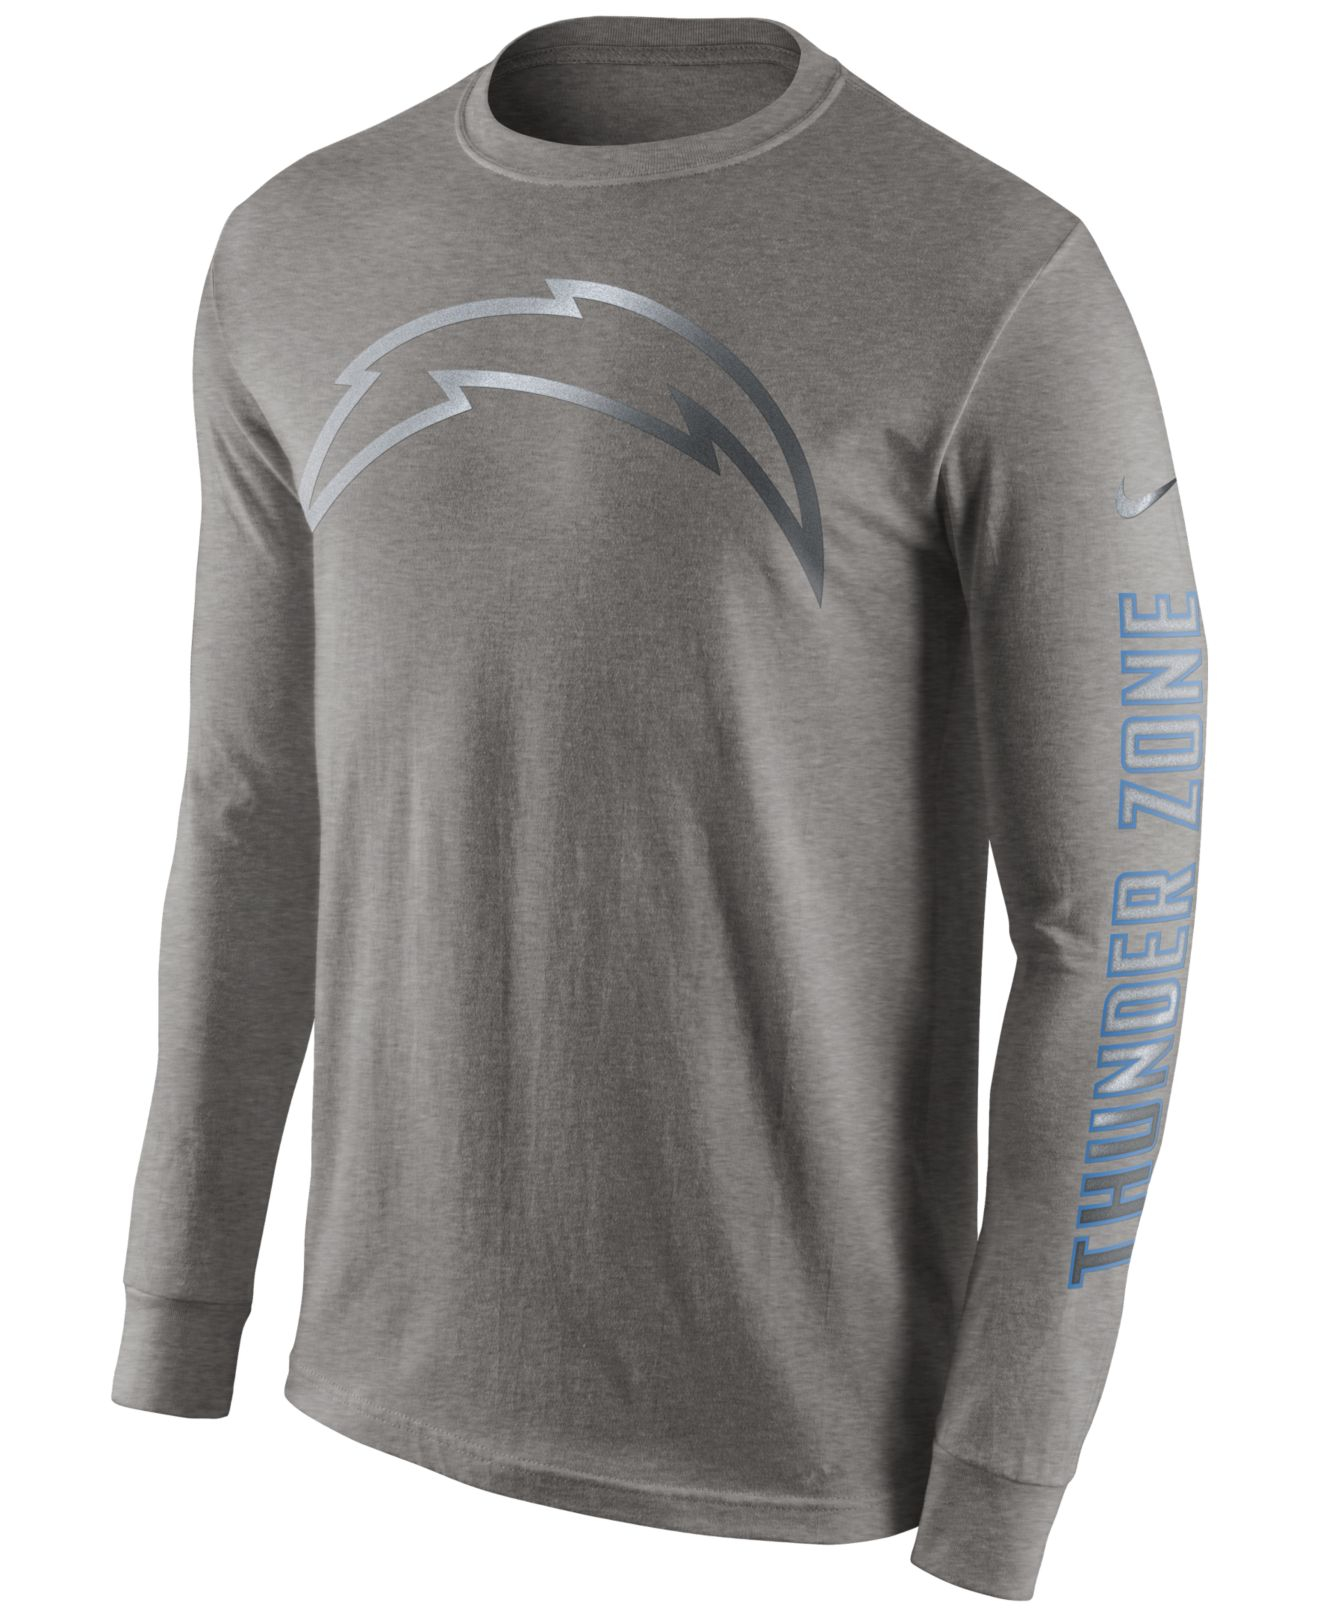 San Diego Chargers Womens Shirts